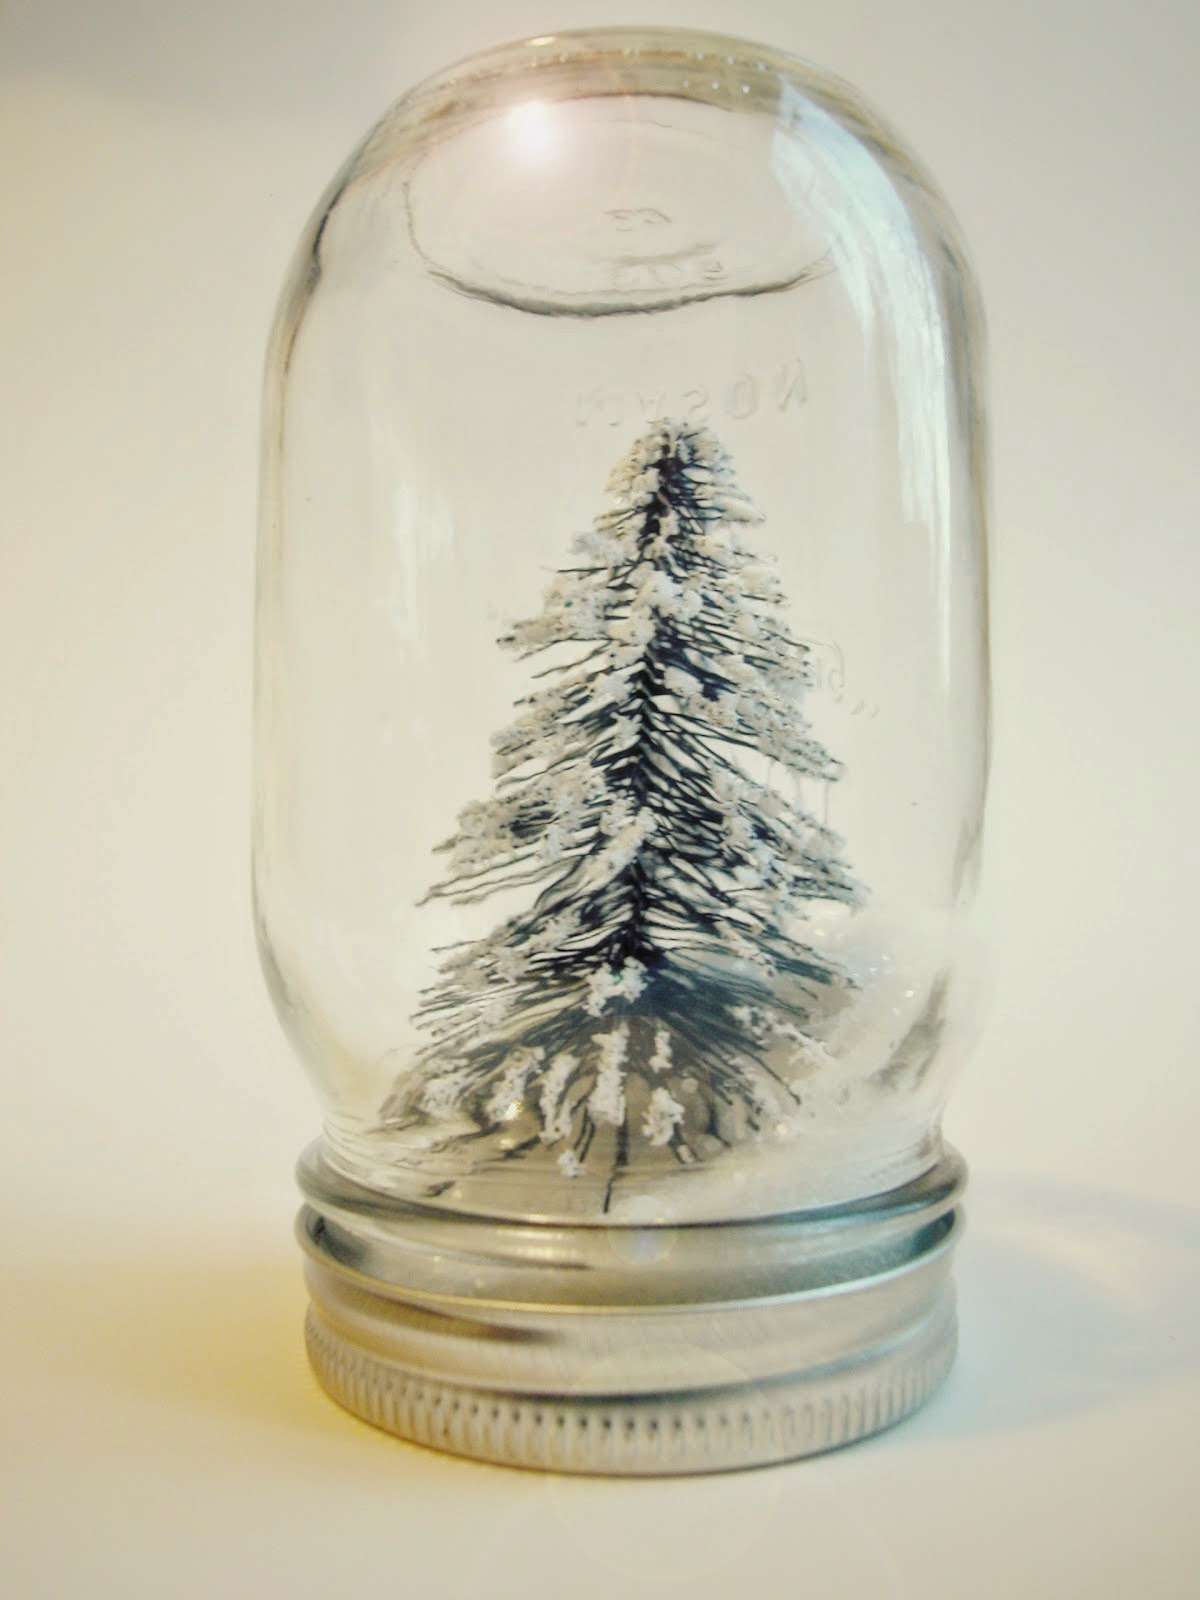 http://motherrising.blogspot.com/2011/12/snow-day-diy-anthropologie-snowglobe.html